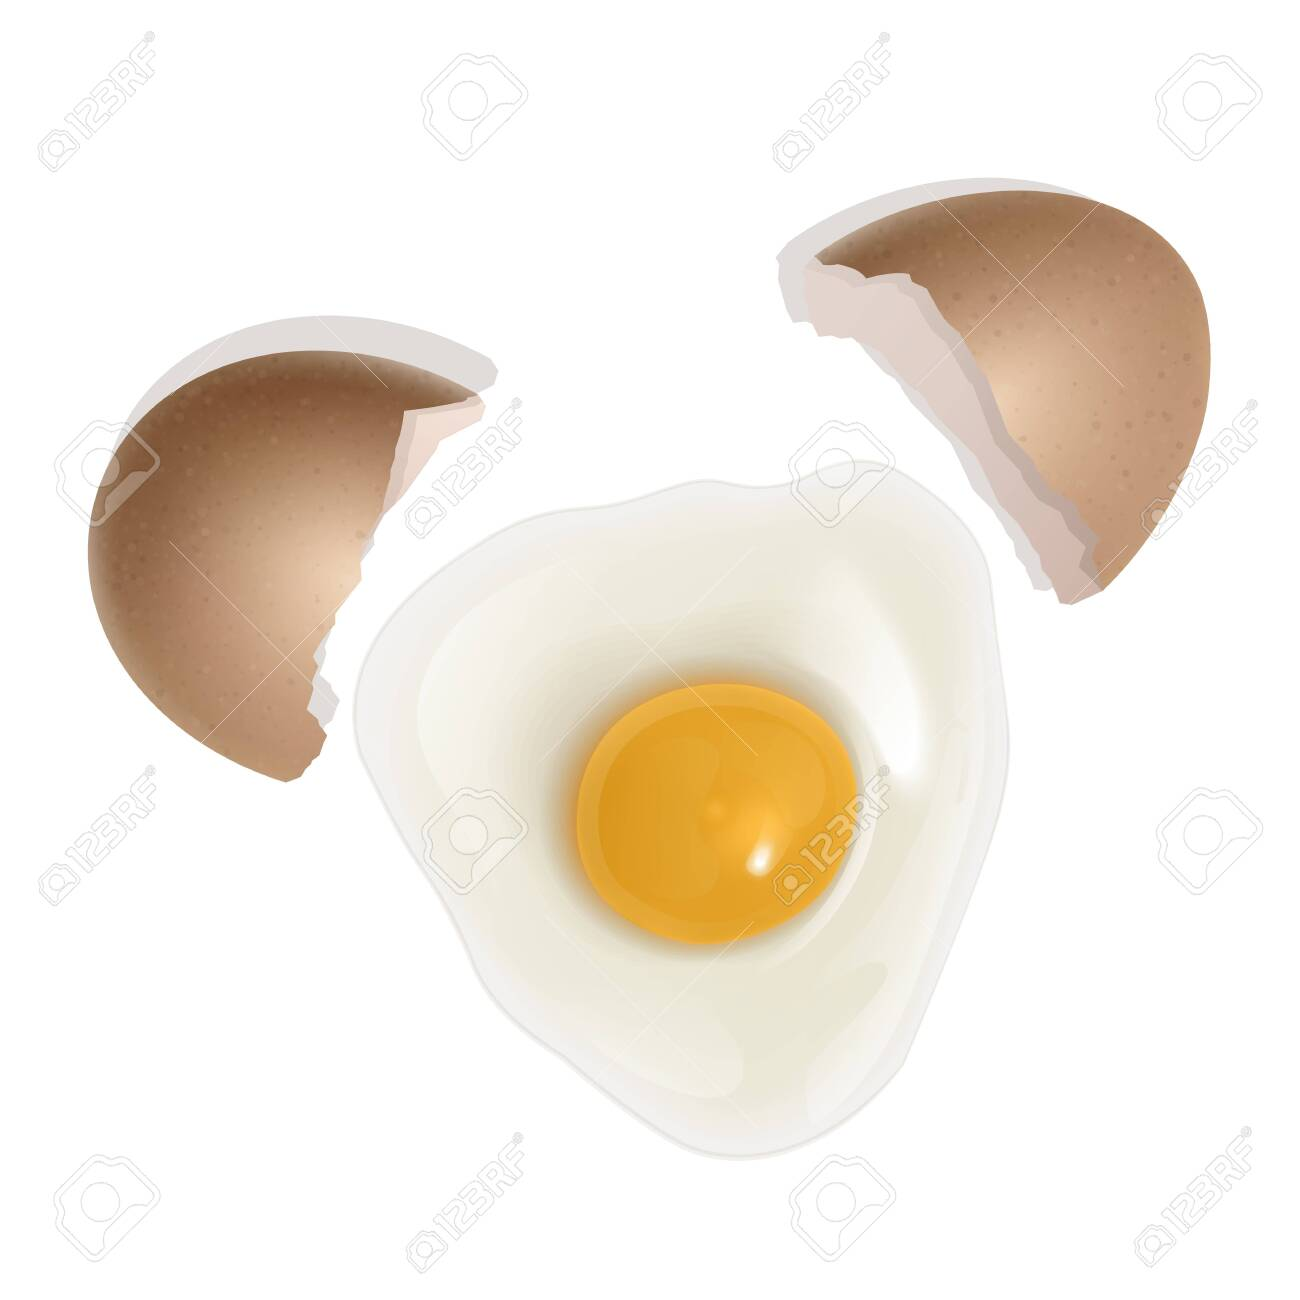 The raw chicken egg, broken egg. Healthy food for breakfast. natural protein and yolk. Vector illustration in realistic style, isolated on white background. - 135607640